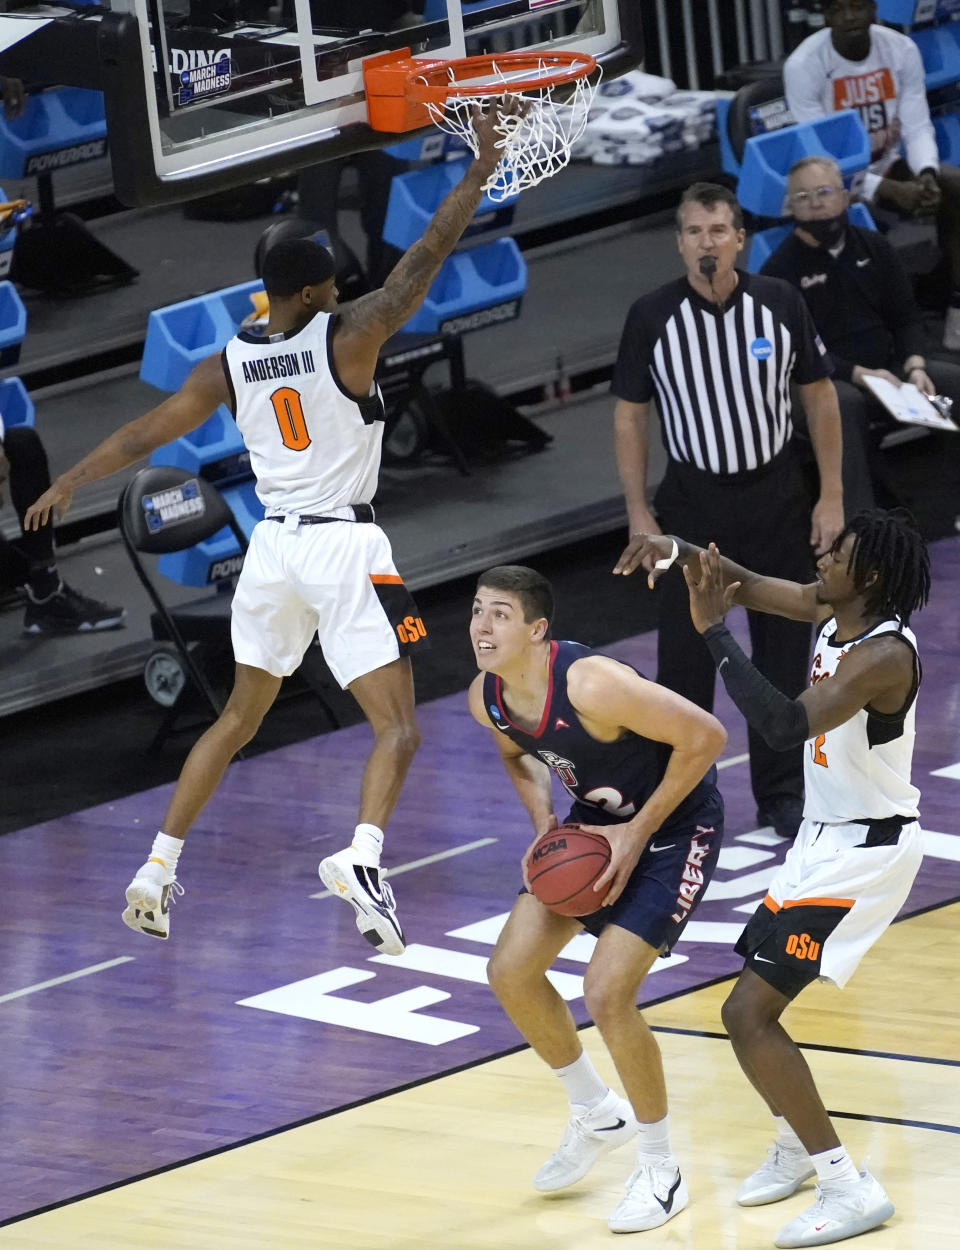 Liberty's Blake Preston, center, pump fakes Oklahoma State guard Avery Anderson III in to the air as Kalib Boone also defends during the first half of a first round NCAA college basketball game Friday, March 19, 2021, at the Indiana Farmers Coliseum in Indianapolis.(AP Photo/Charles Rex Arbogast)